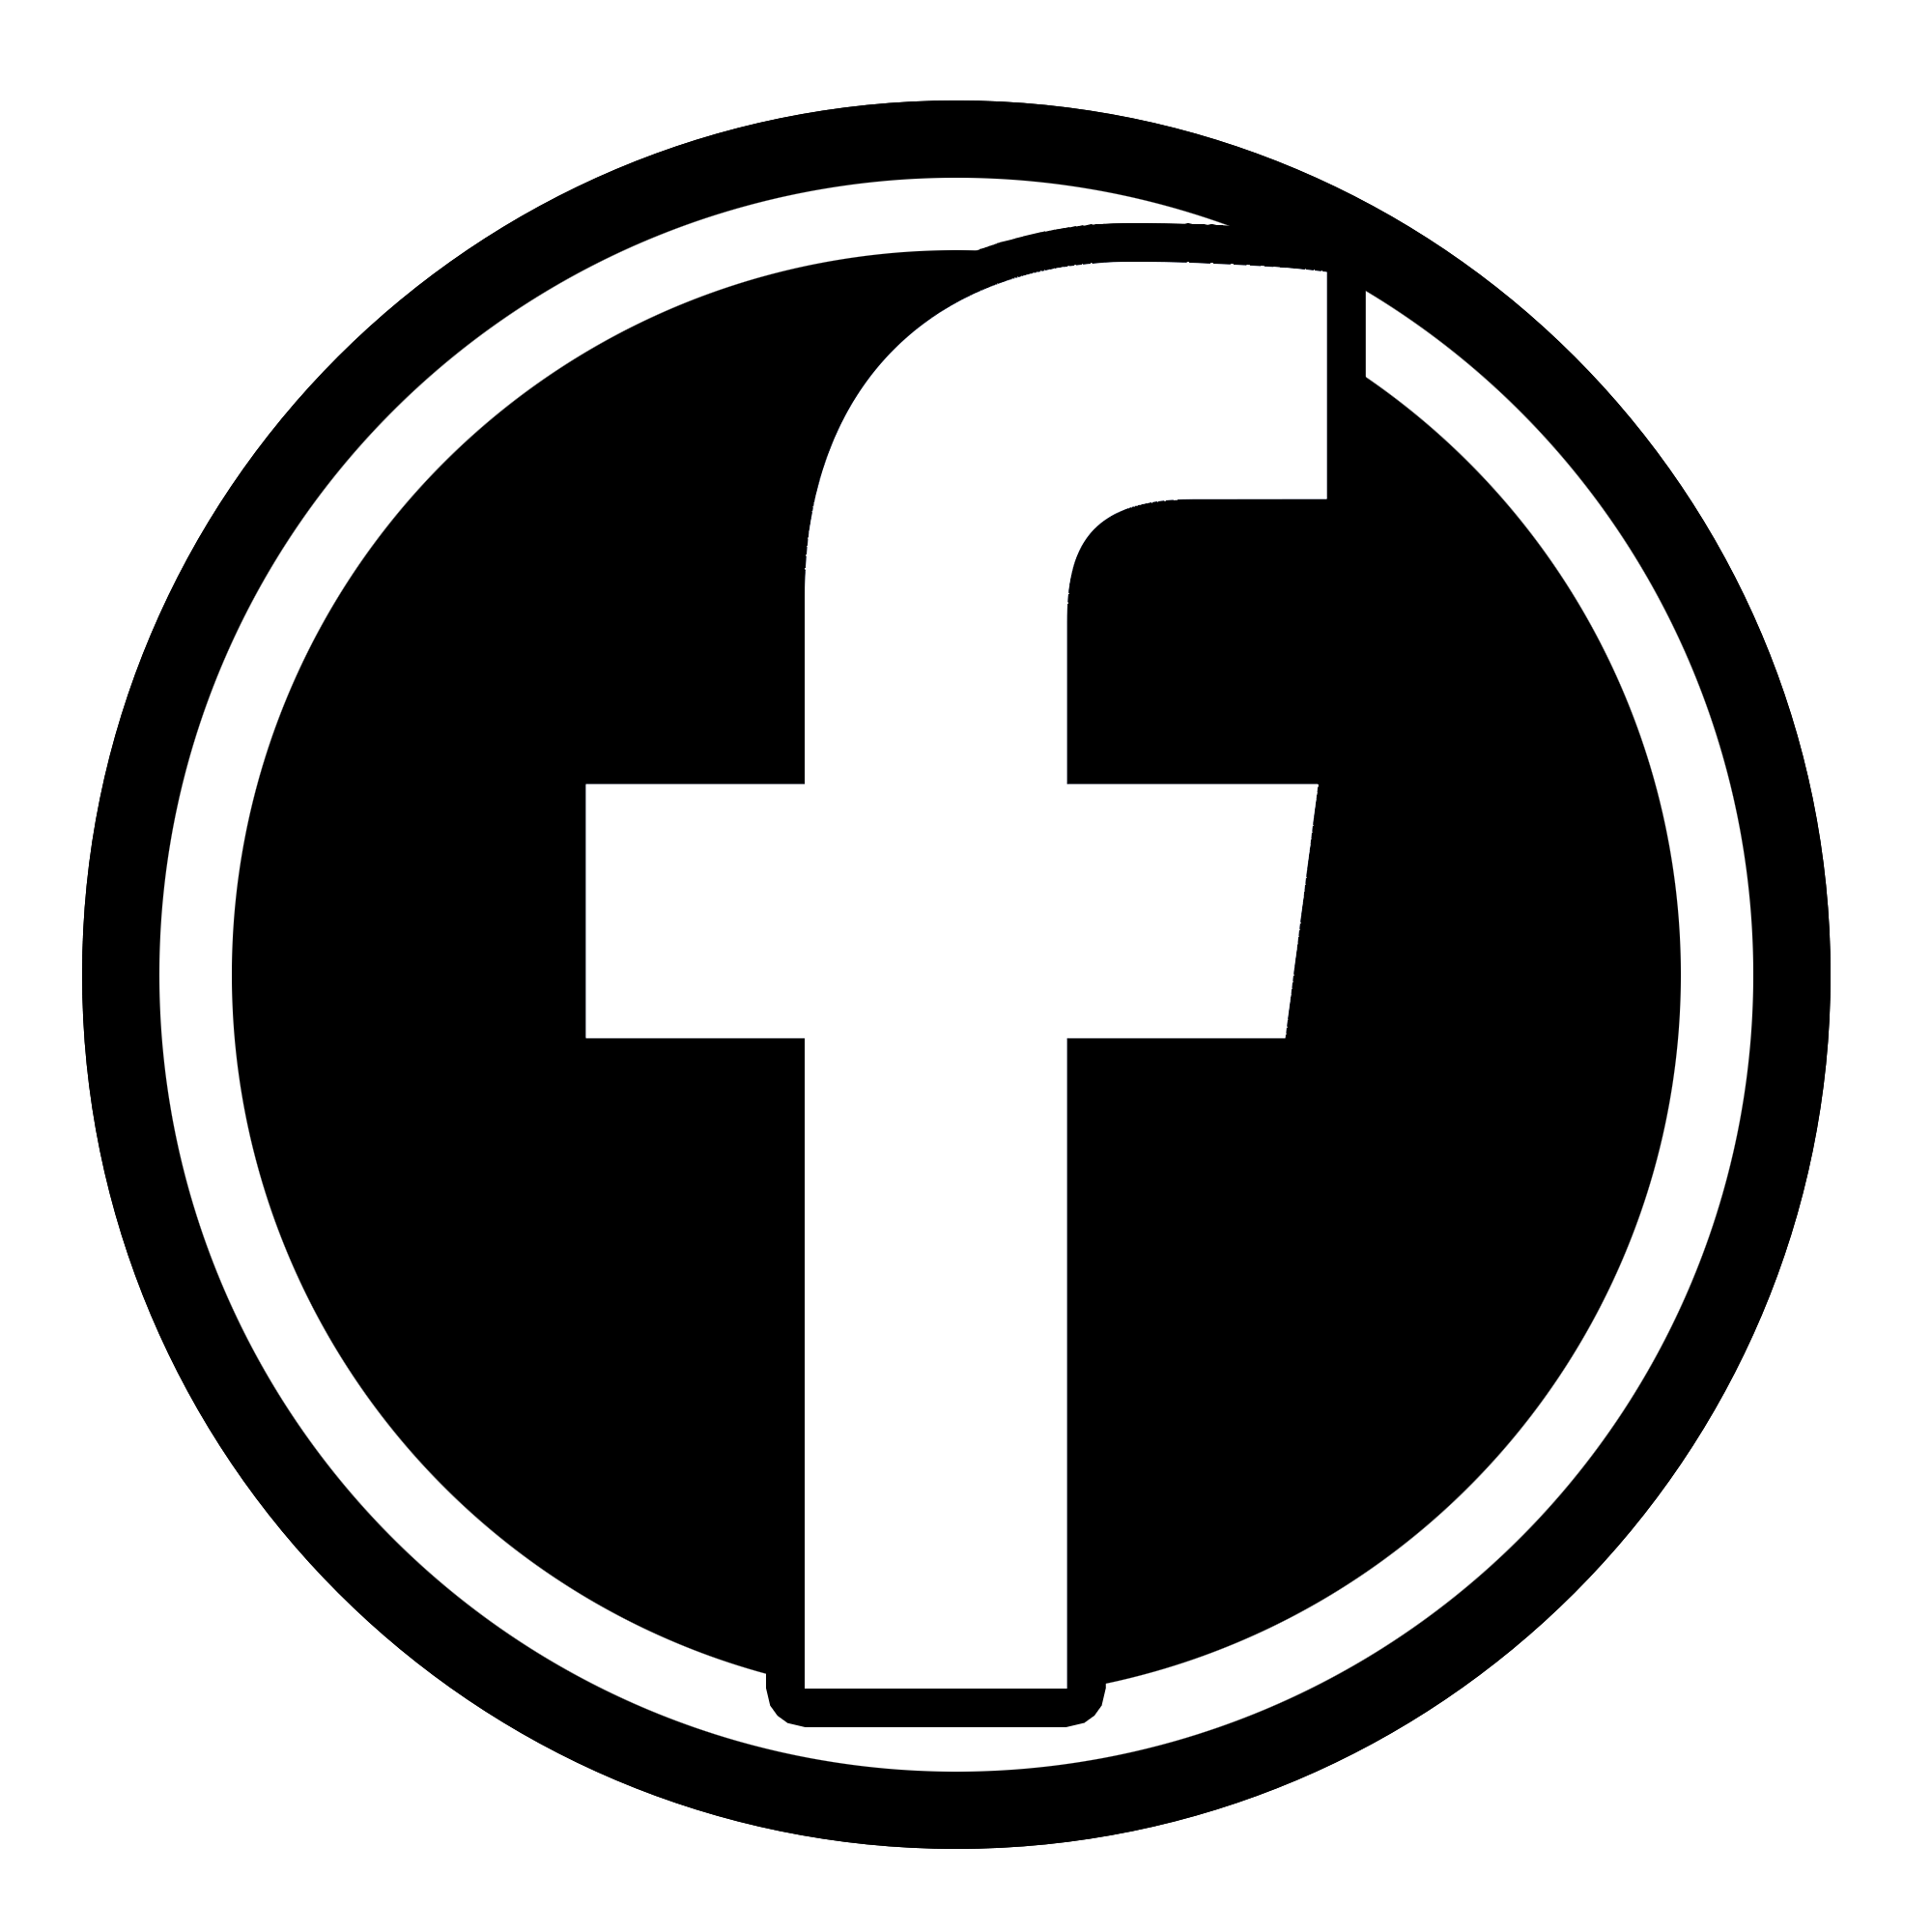 Facebook png icon. Images free icons and